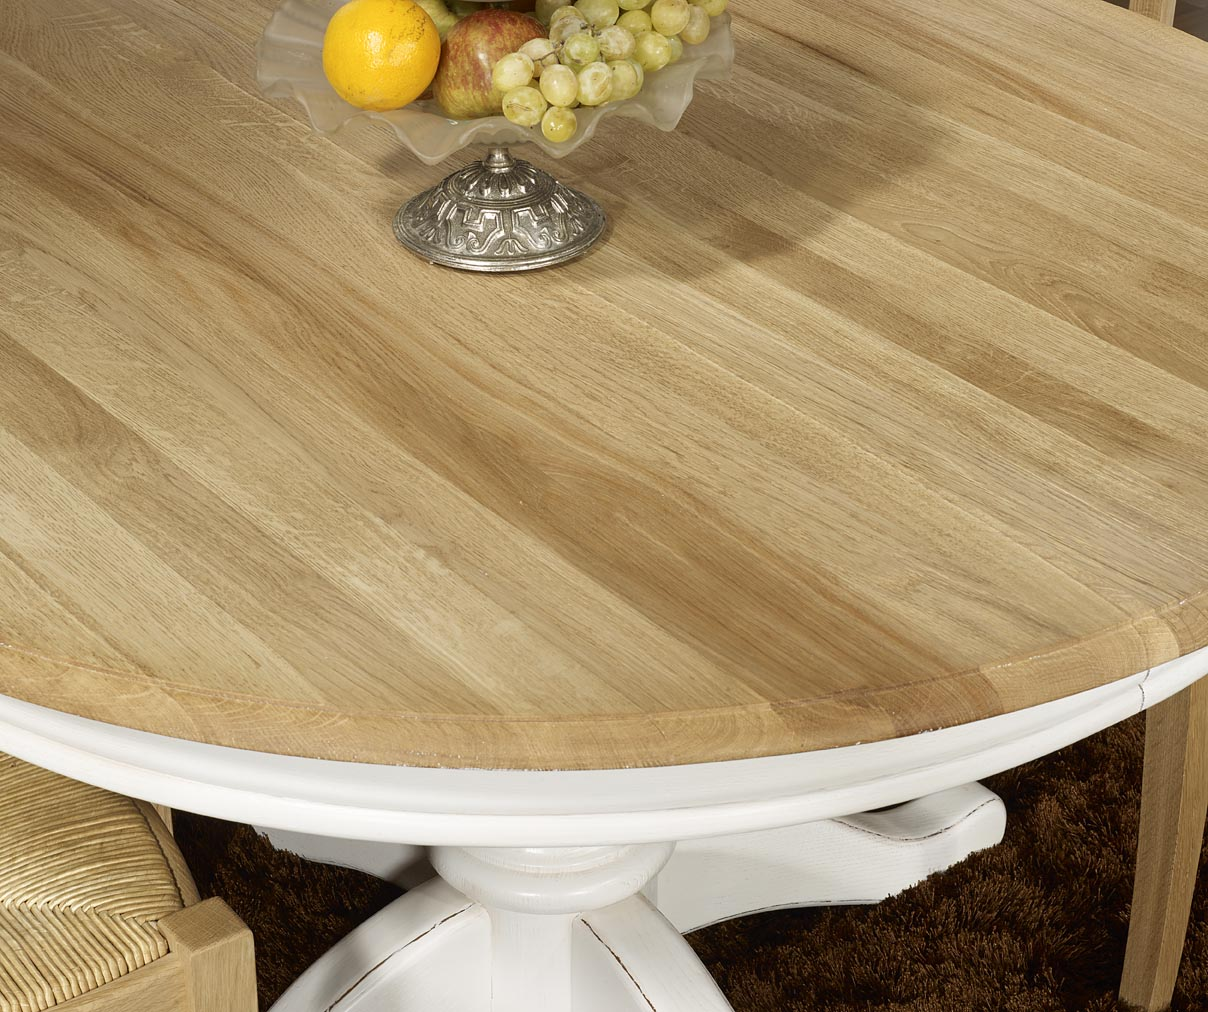 Meuble en chne table ronde pied central ralise en chne for Table ronde bois massif pied central